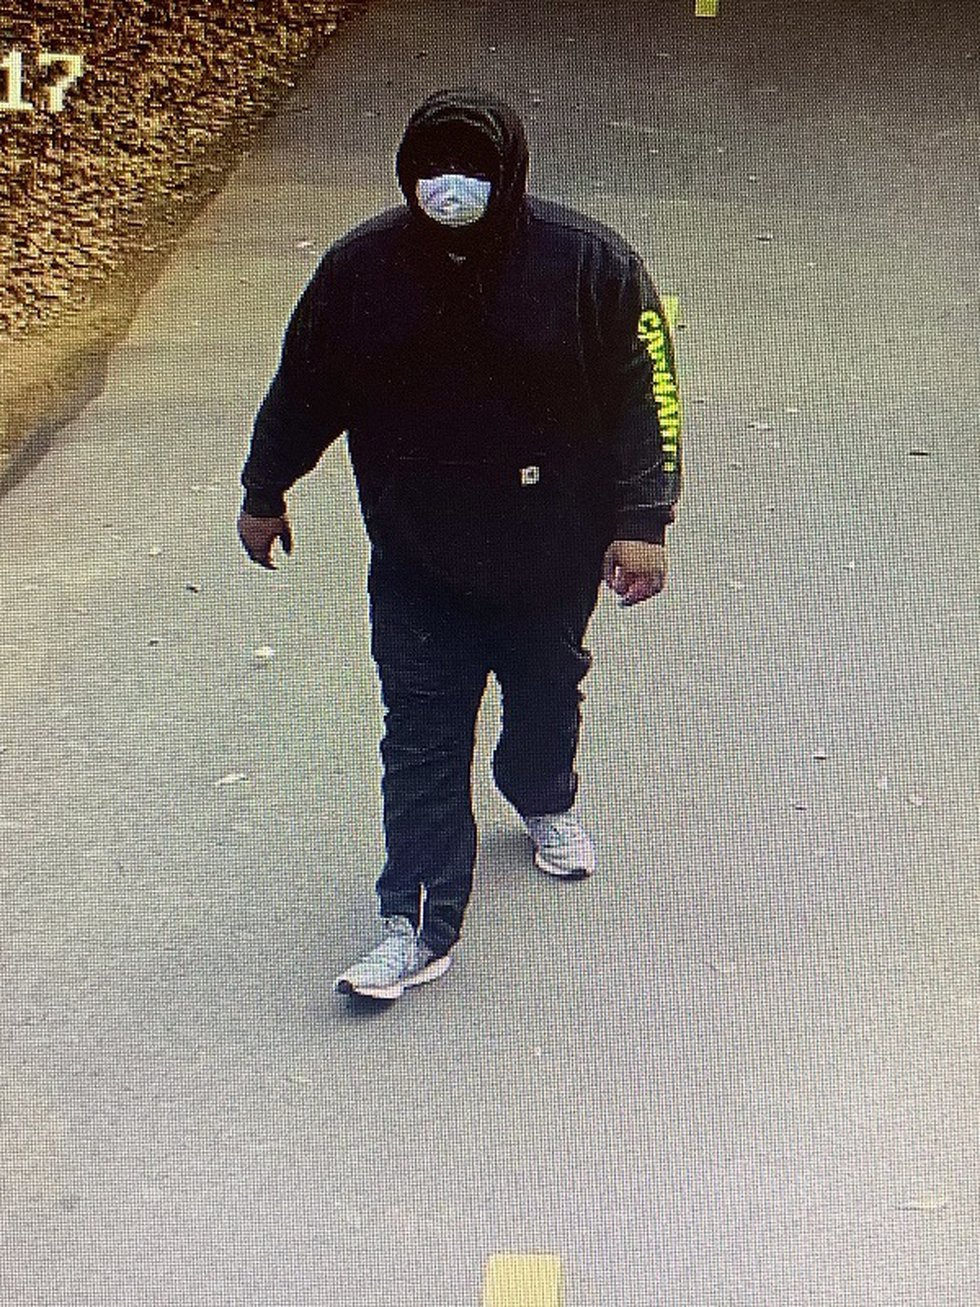 The North Augusta Department of Public Safety is looking for this suspect following a robbery...